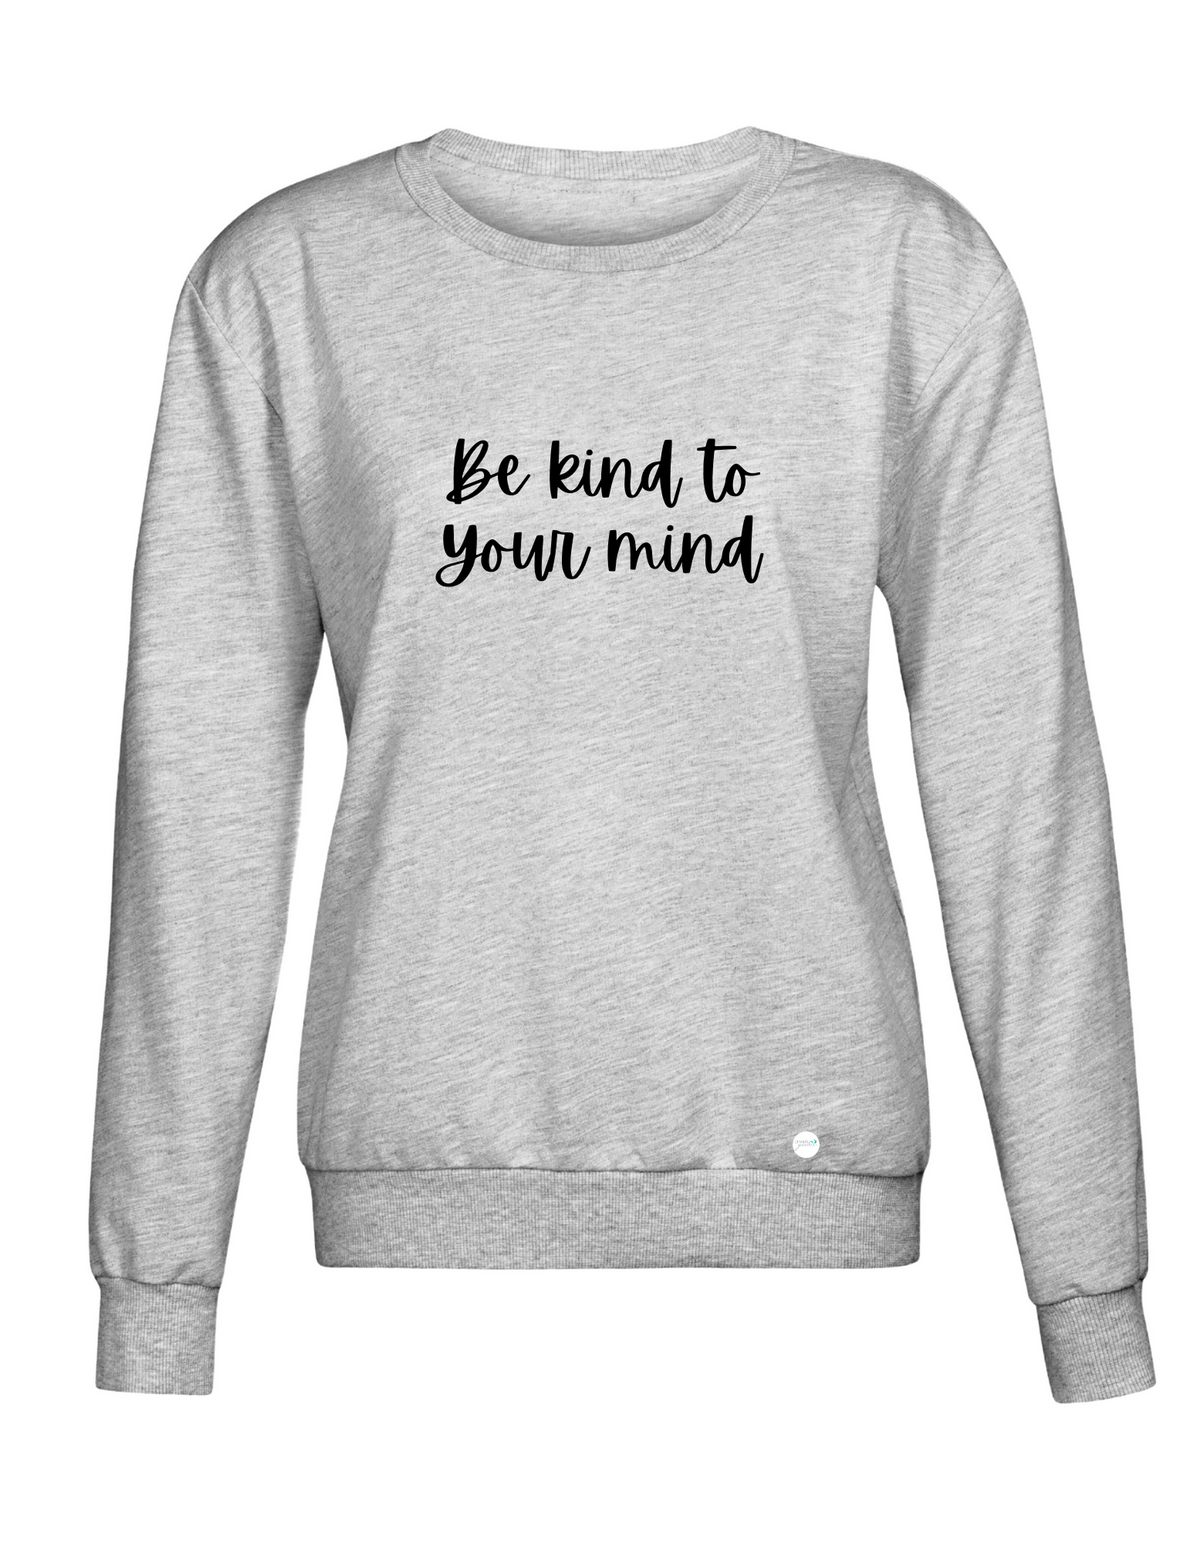 mental health apparel, mental health t-shirt, mental health shirt, mental health clothing, mental health awareness apparel, mental health apparel, warrior hoodie, warrior apparel, be kind to your mind sweater, be kind to your mind shirt,